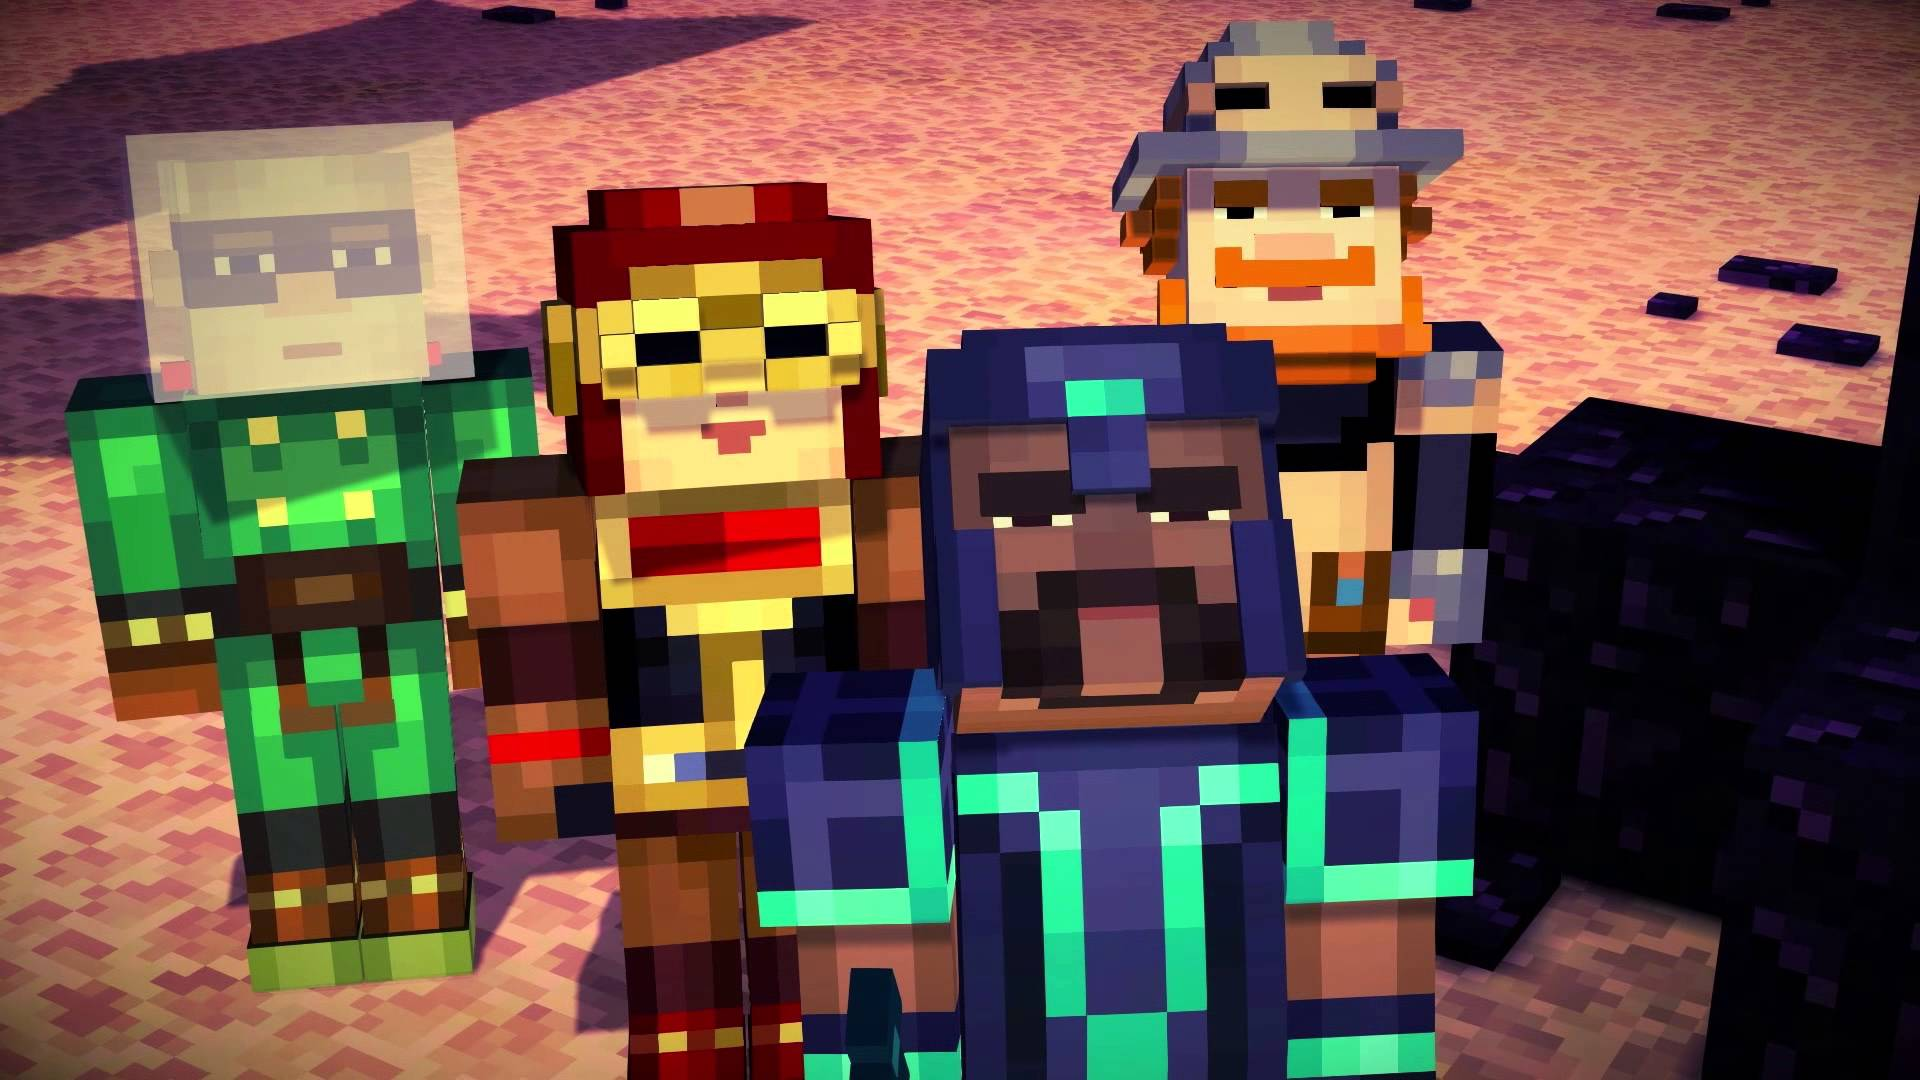 Review: Minecraft: Story Mode Is a Lot of Fun, but not Perfect | Gearcraft